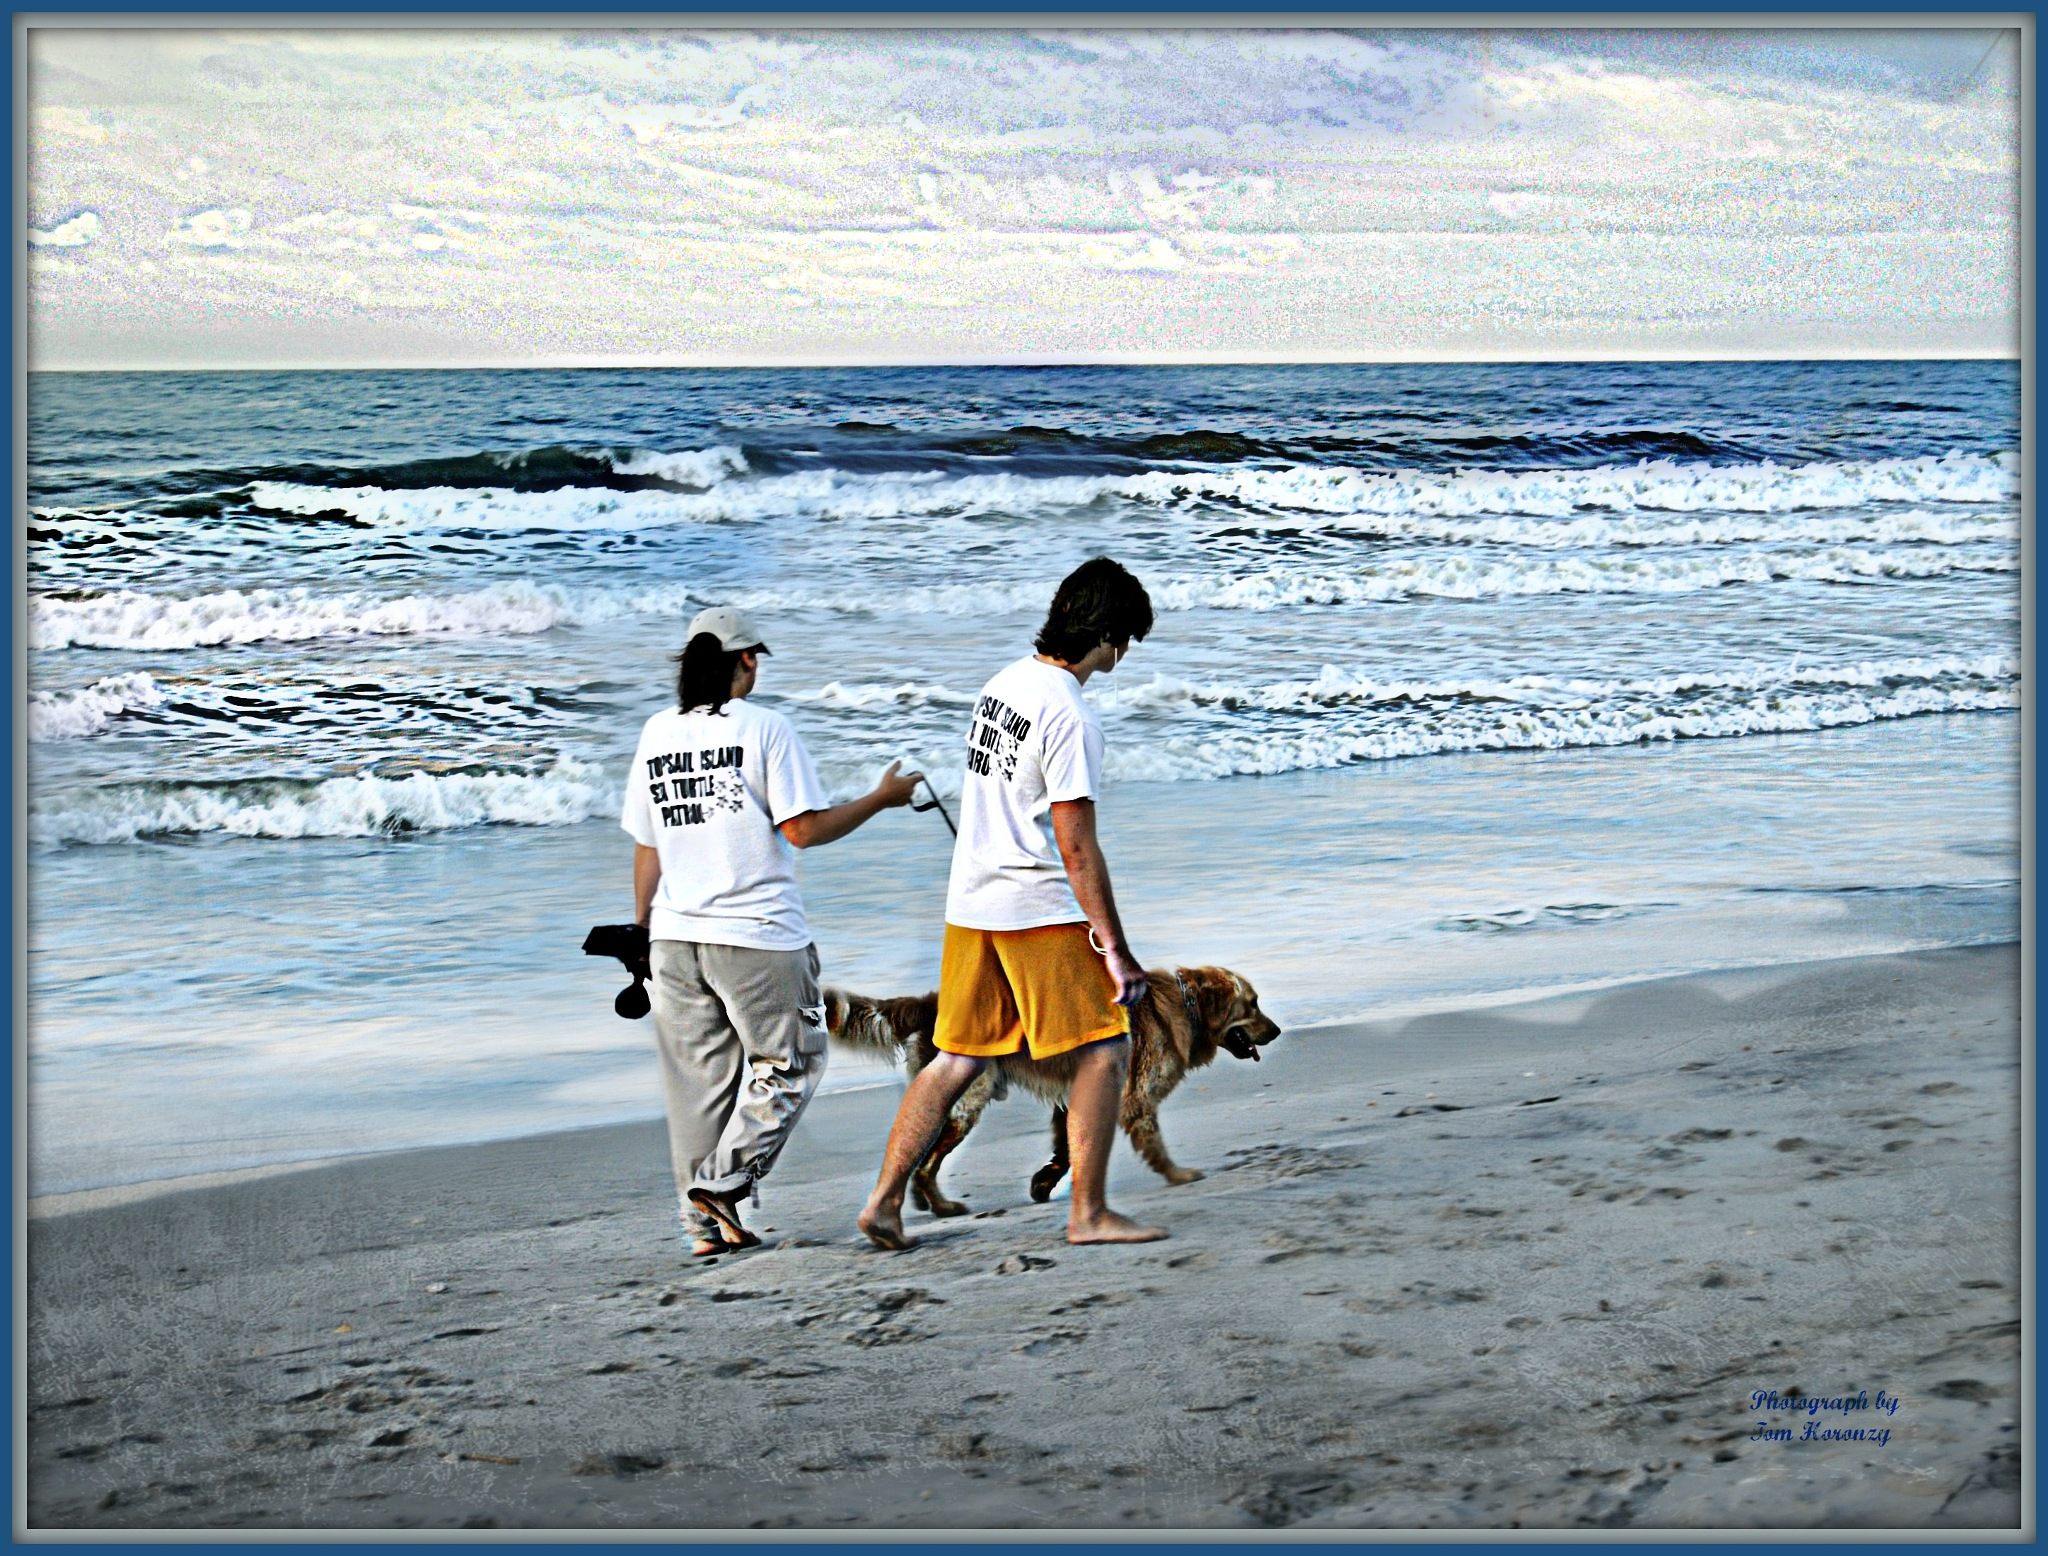 Volunteer Rescue Topsail Island by Tom Horonzy